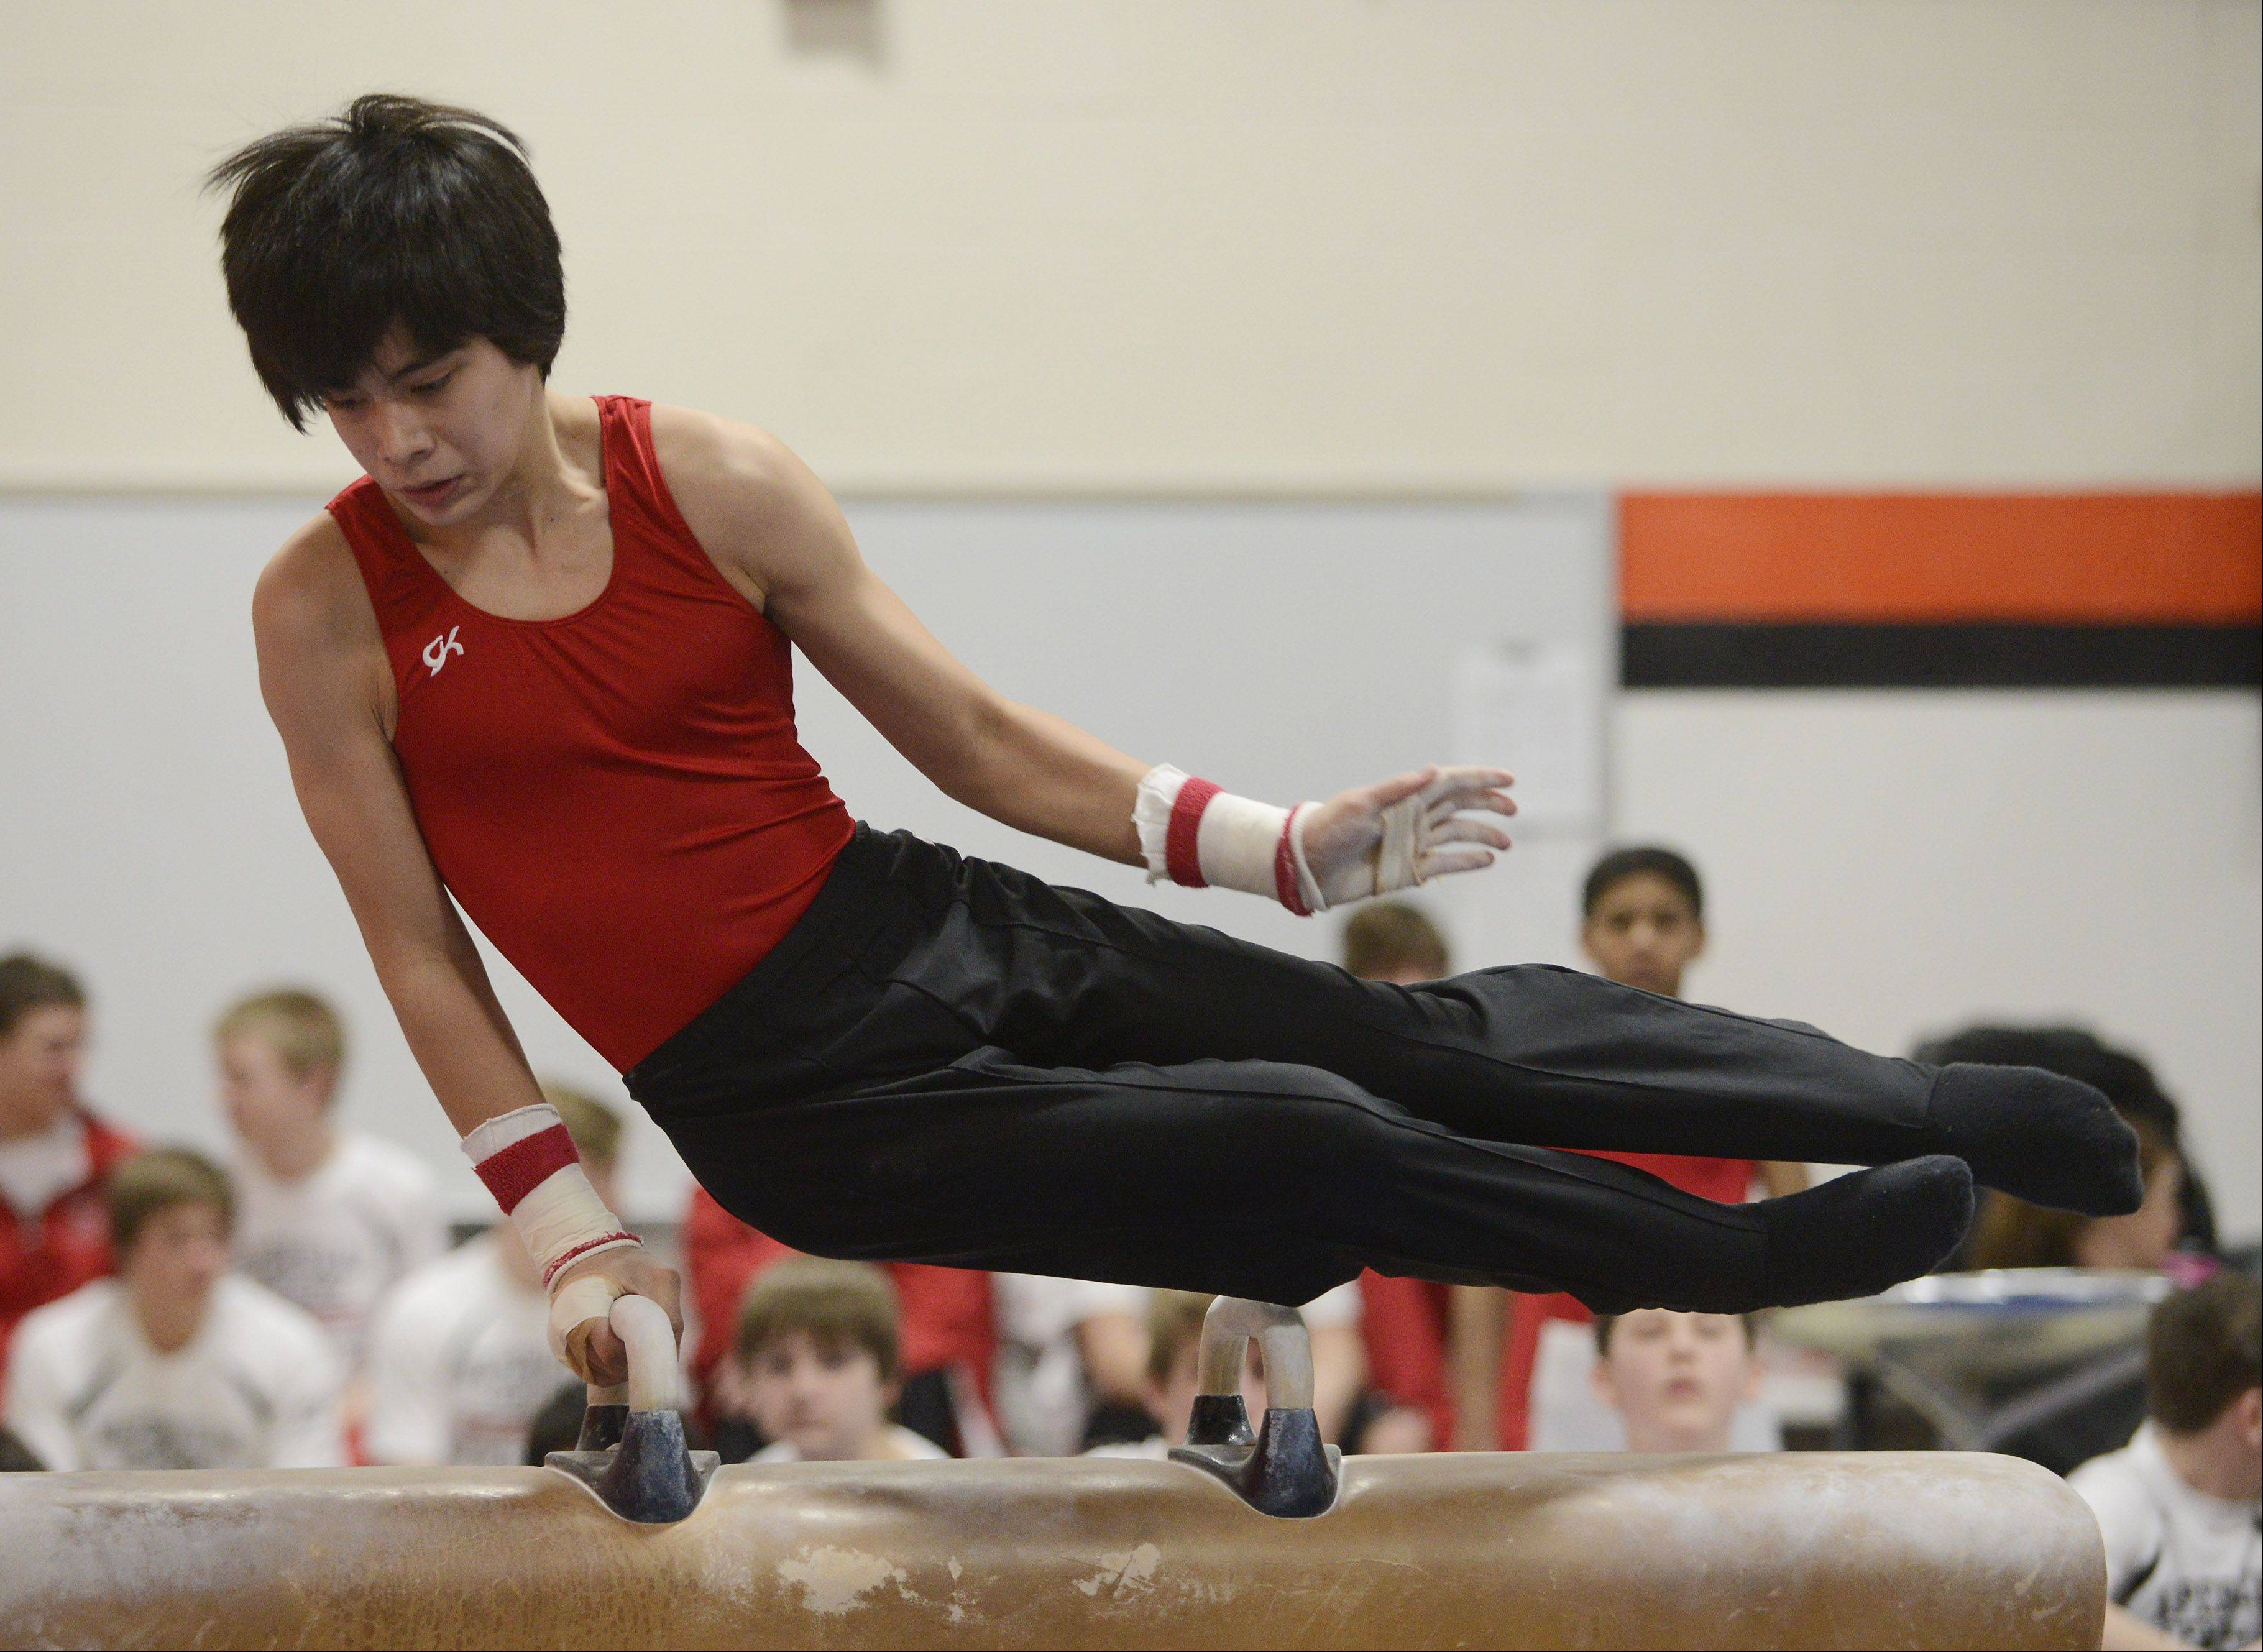 Naperville Central�s Keenan Oshiro competes on the pommel horse during Saturday�s boys gymnastics meet at Libertyville High School.